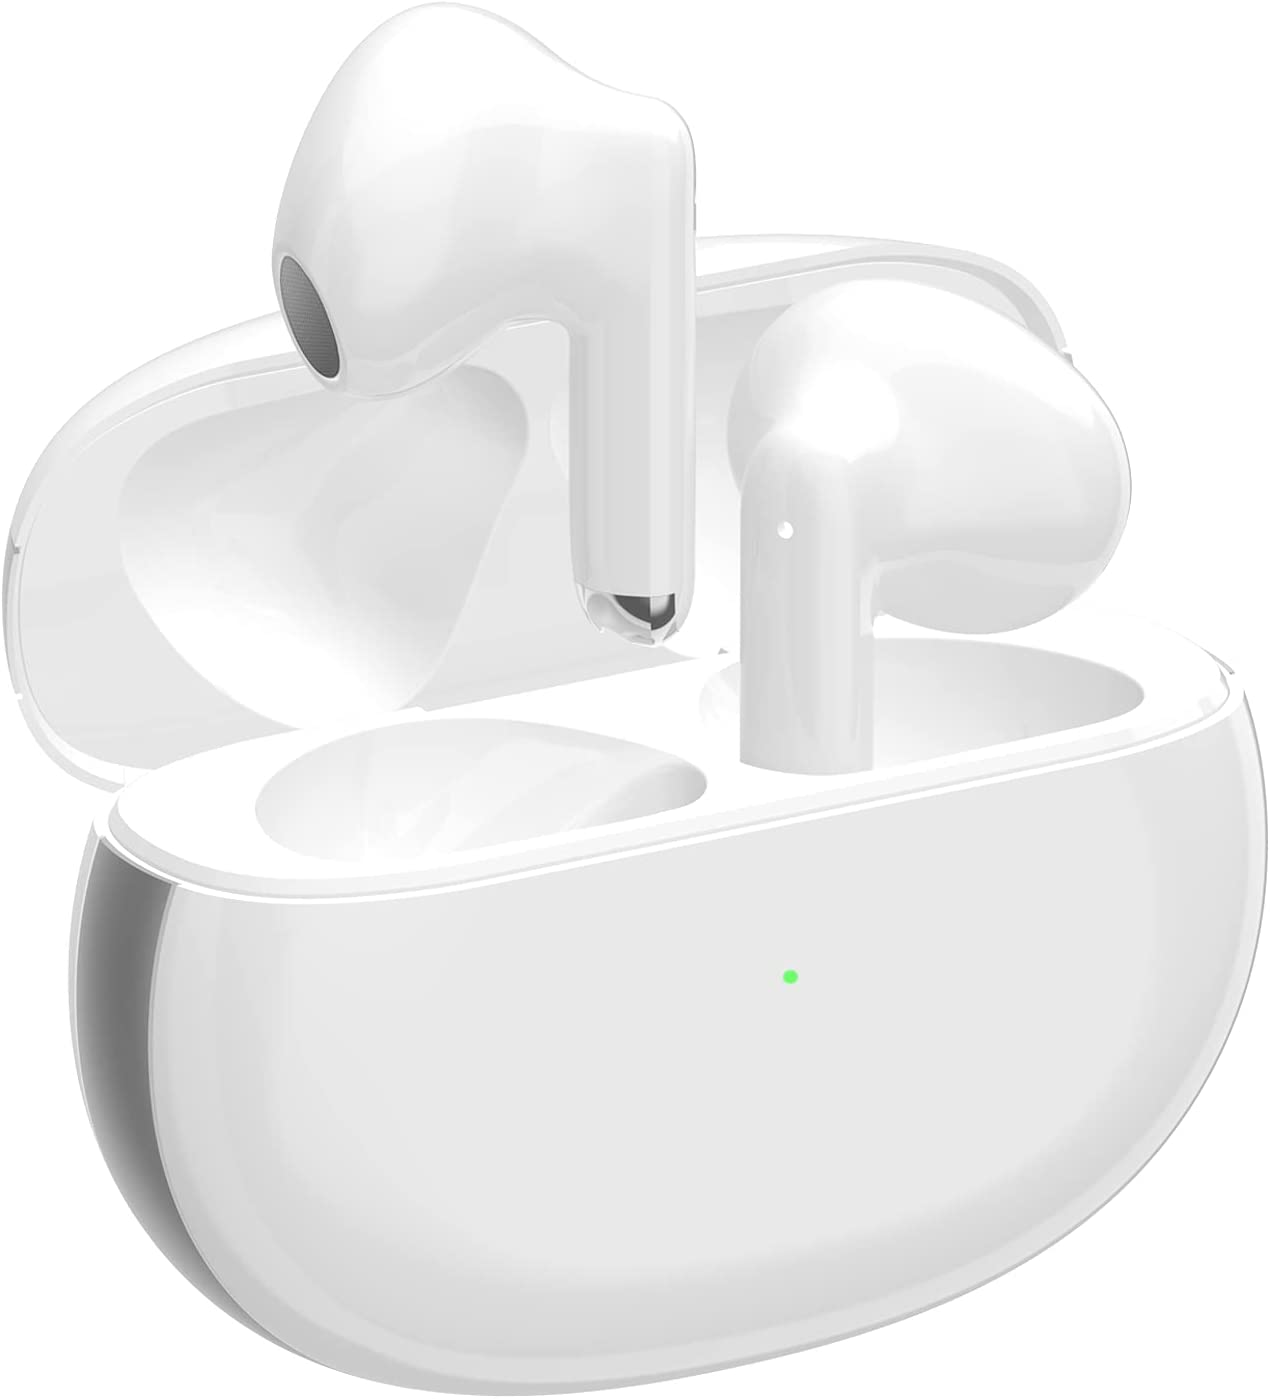 Wireless Earbuds Air podswireless Bluetooth 5.1 Headphones with Noise Cancelling, Wireless Charging Case Earpods IPX6 Waterproof in-Ear Ear Buds Built-in Mic Stereo Air Buds for iPhone/Android (White)